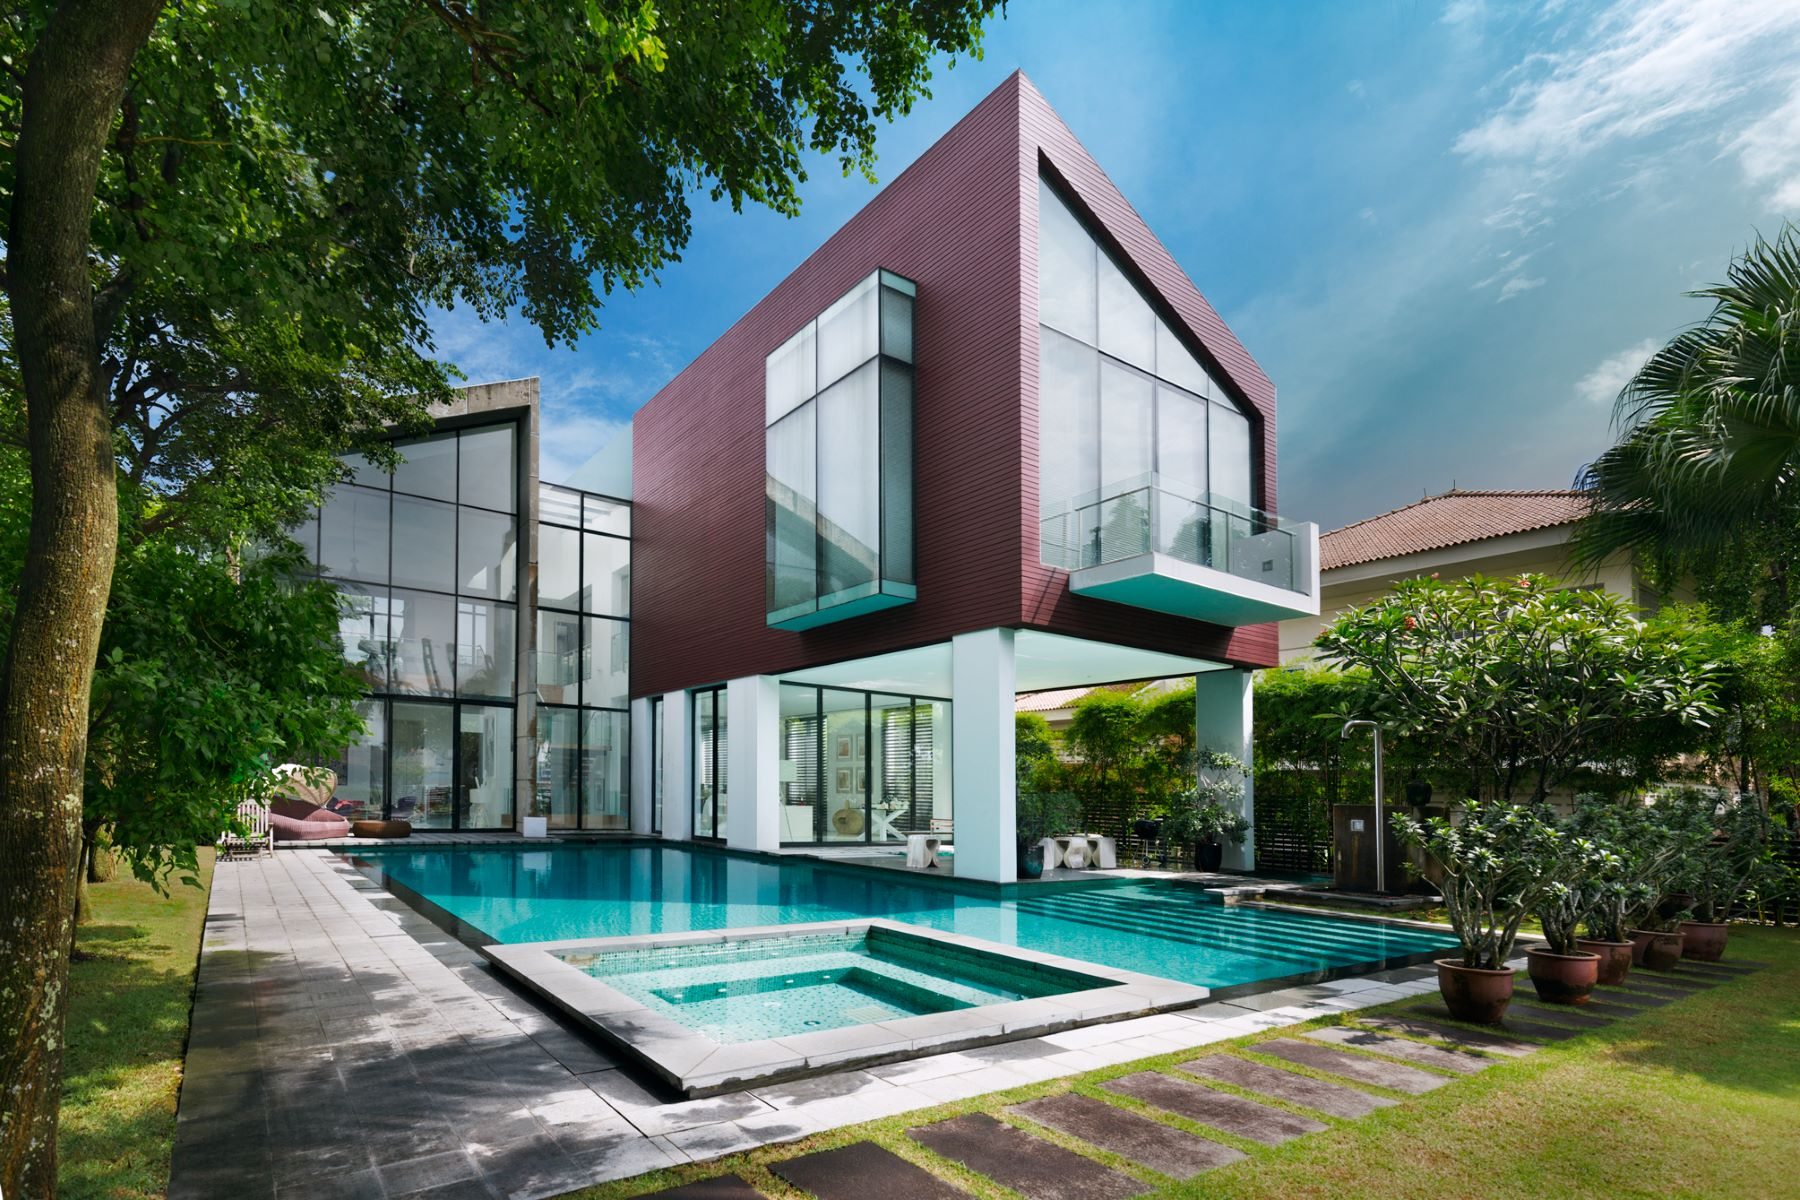 Single Family Home for Sale at Ocean Drive Singapore, Cities In Singapore Singapore